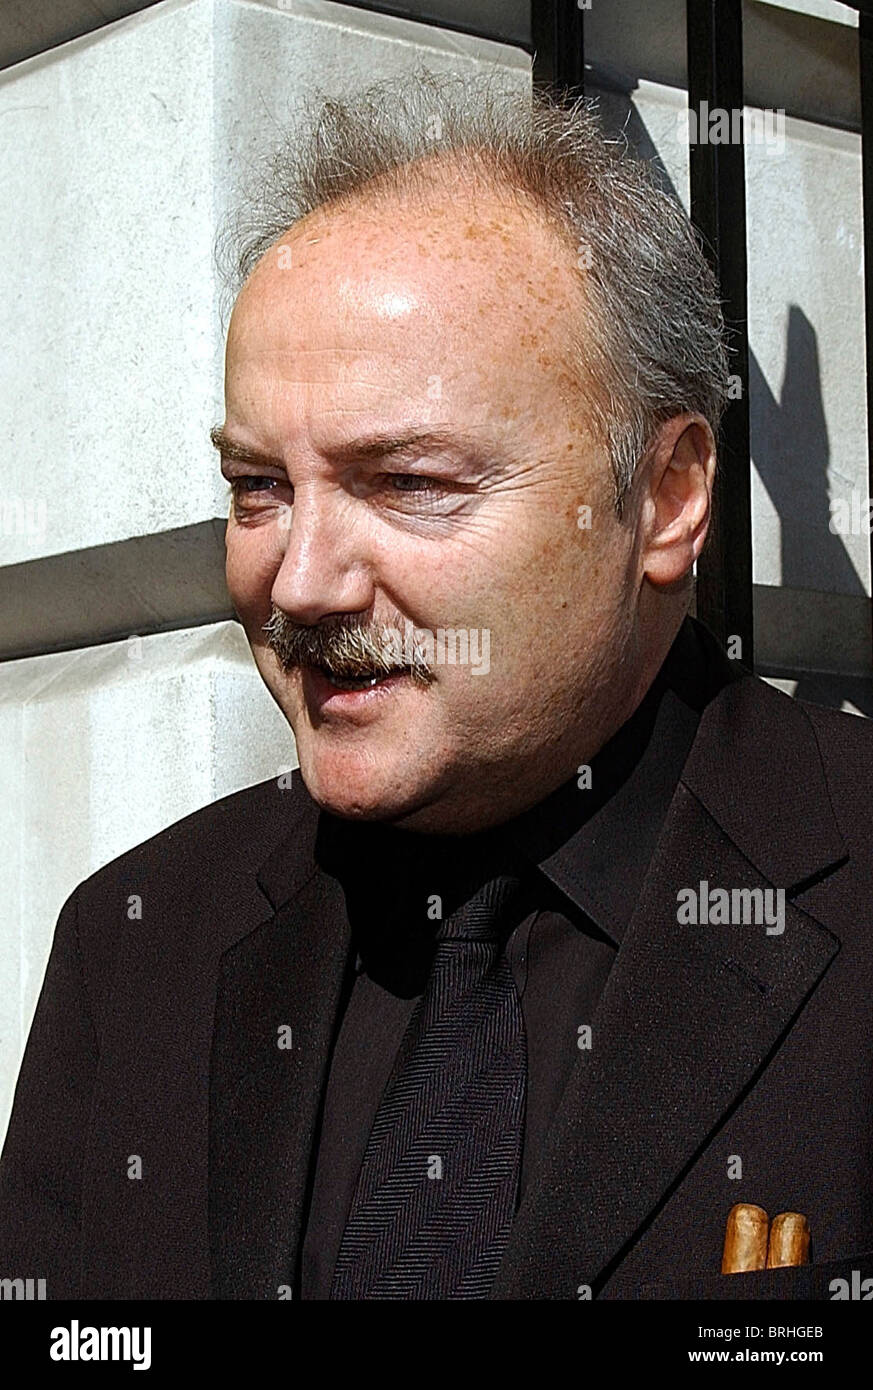 MP George Galloway at the anti-war demo in Grosvenor Square, London, 5-4-2003. Photo by John Robertson-Tel.07850 - Stock Image